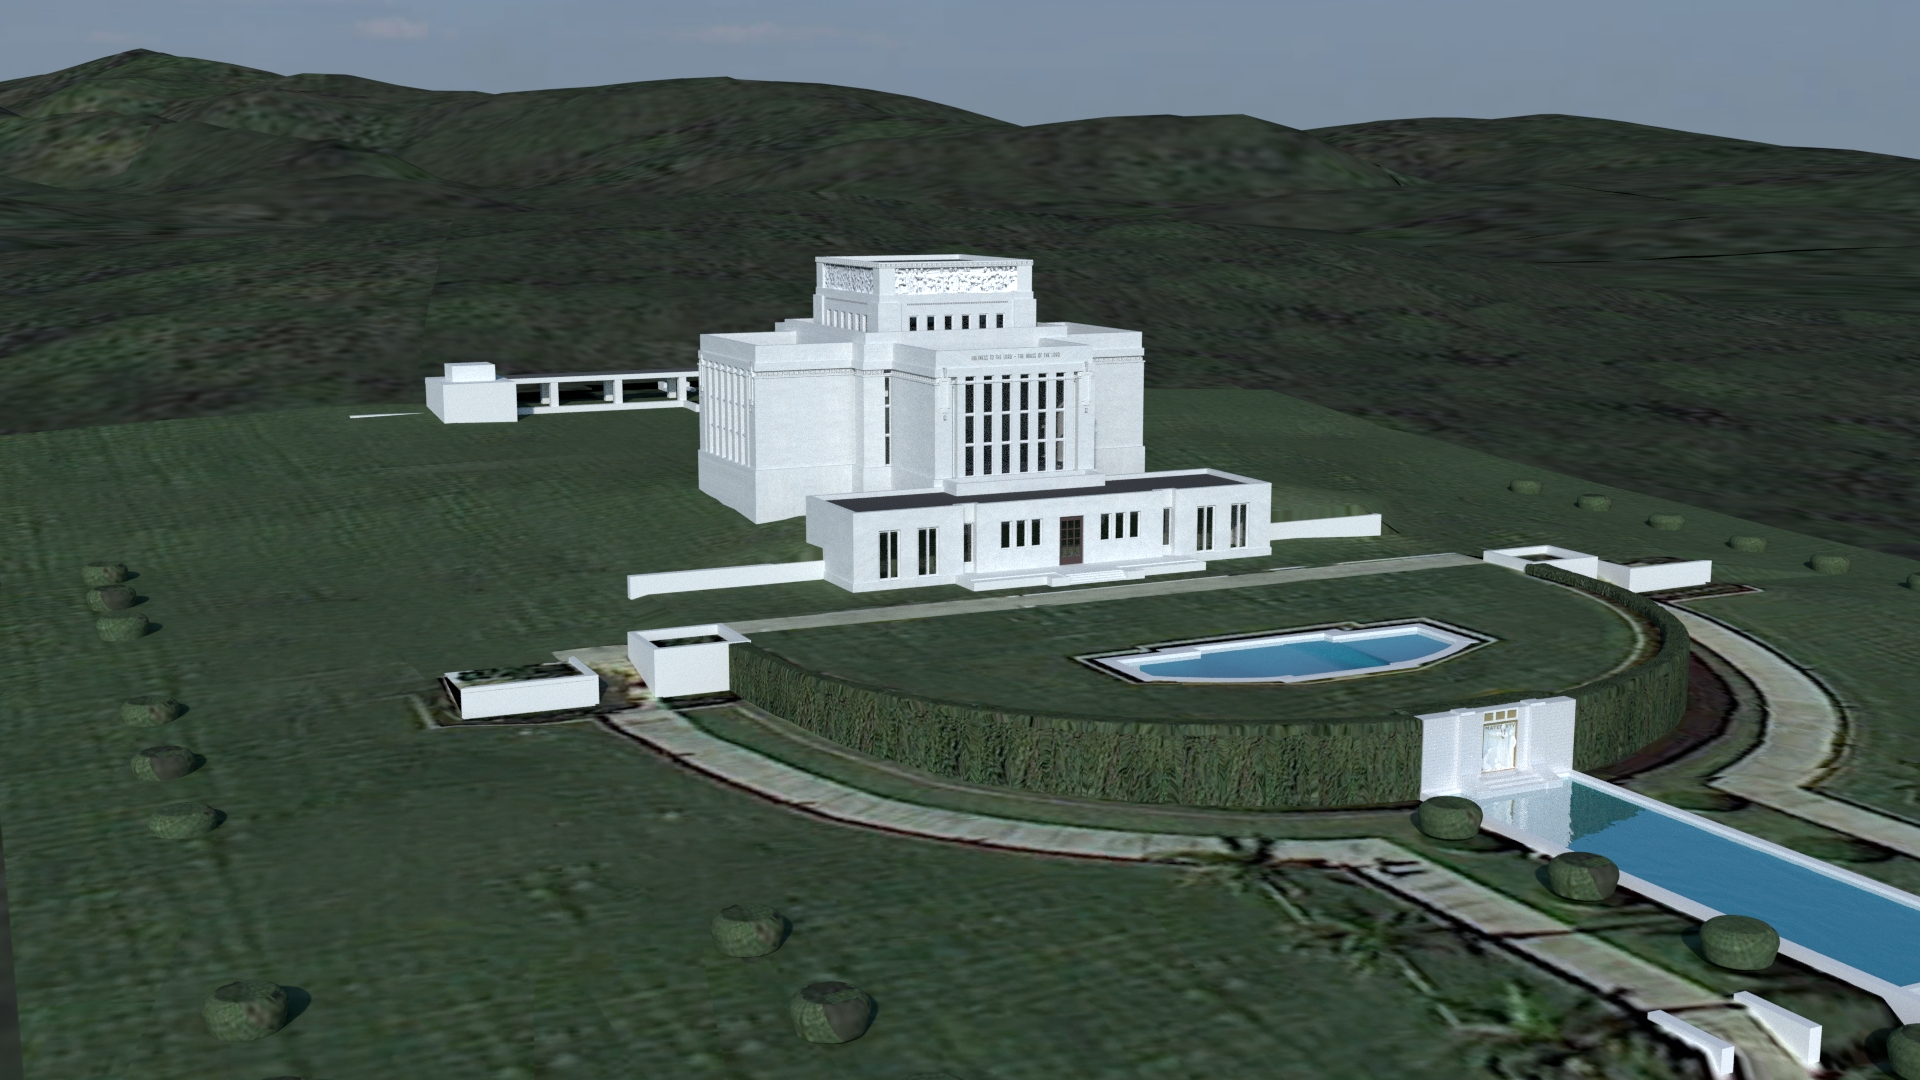 Laie Hawaii Temple image 1919